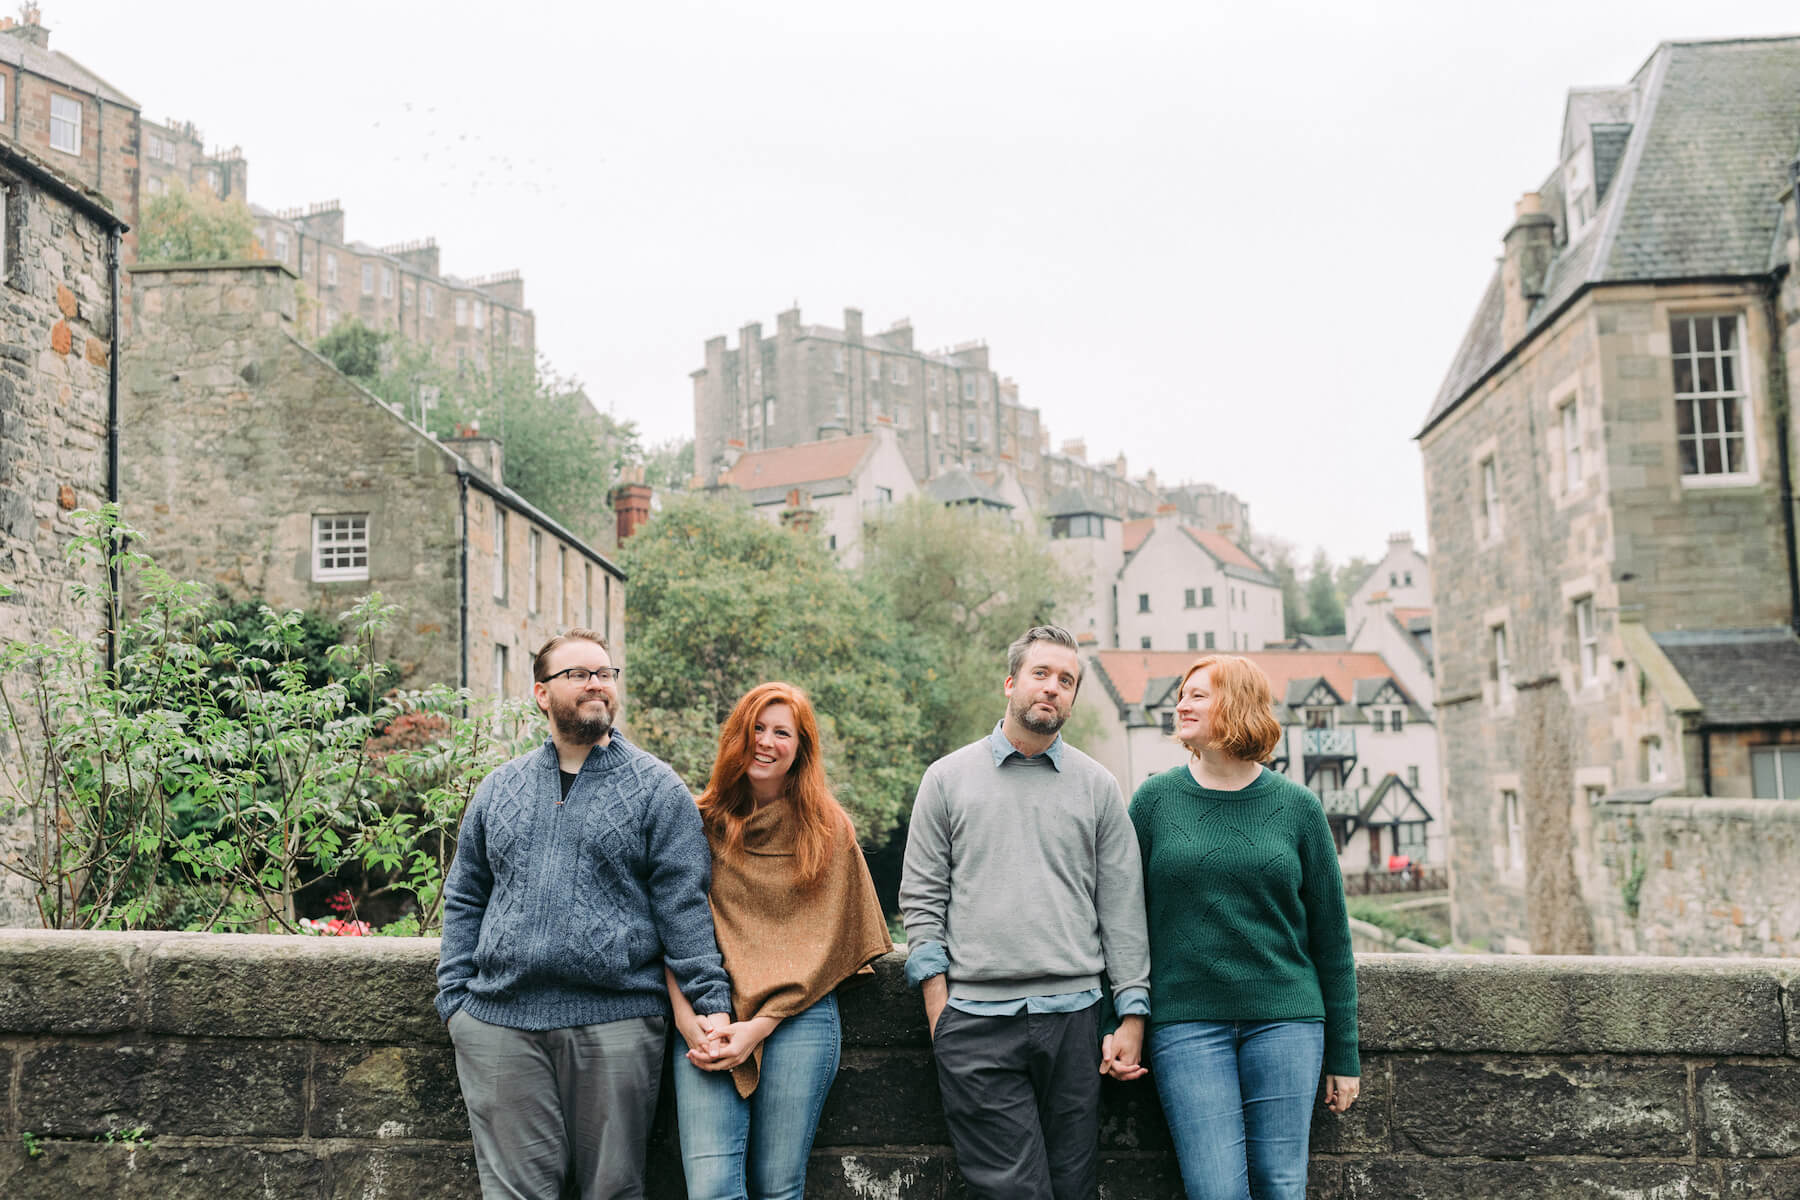 2 couples sitting on stone wall in the town of Edinburgh, UK